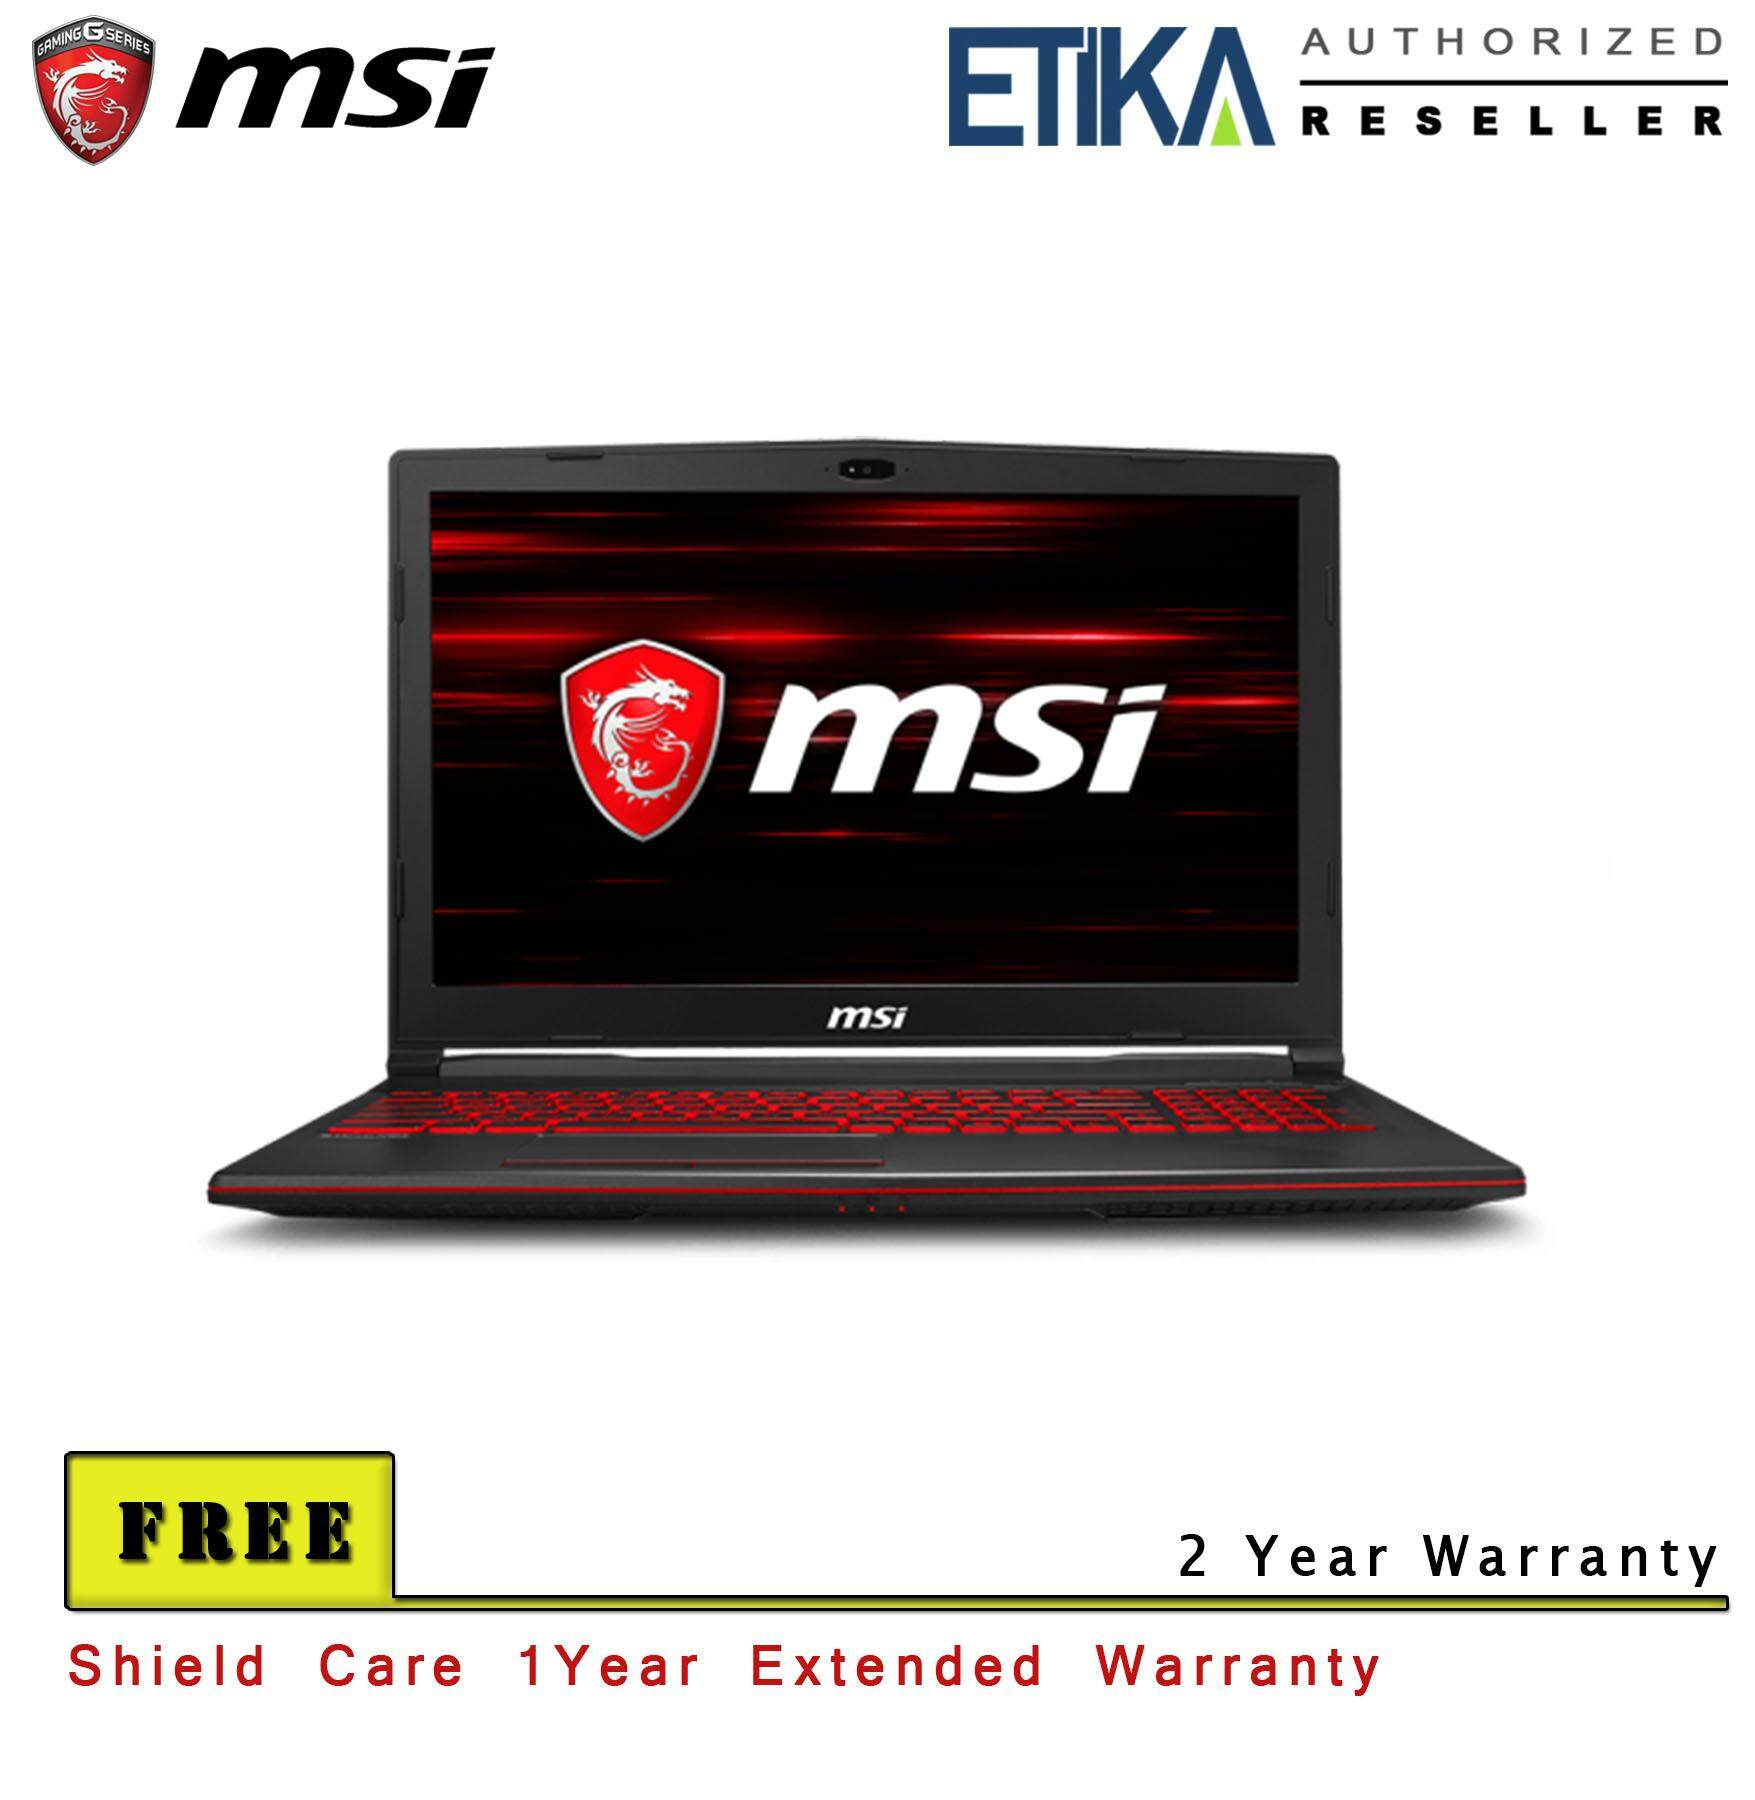 MSI GL63 8RC-666 (GeForce GTX 1050, 4GB GDDR5) Gaming Laptop - FREE Shieldcare + Backpack Malaysia